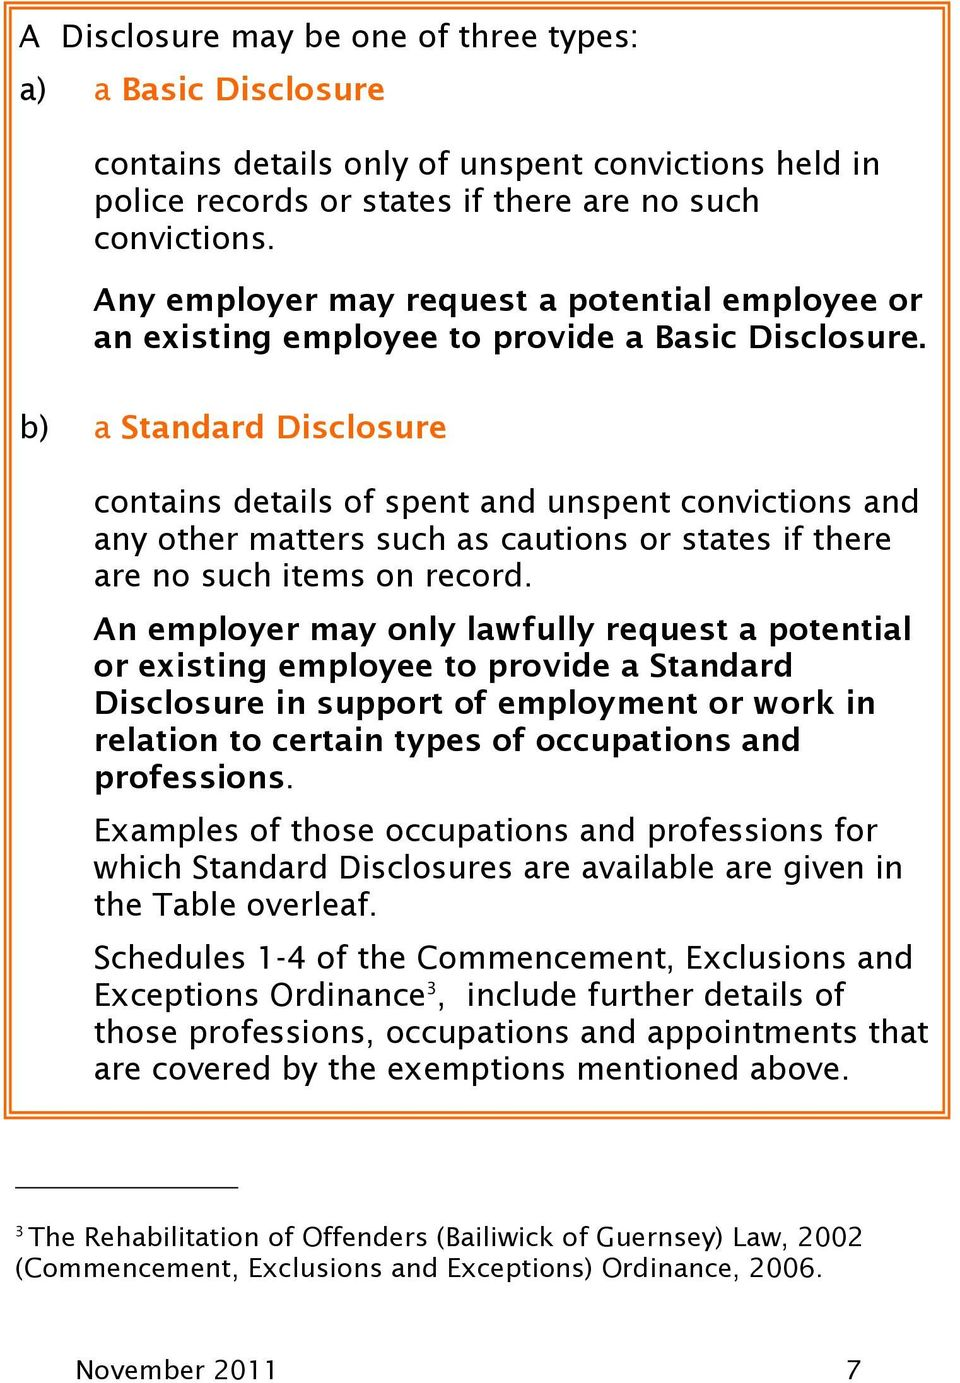 b) a Standard Disclosure contains details of spent and unspent convictions and any other matters such as cautions or states if there are no such items on record.